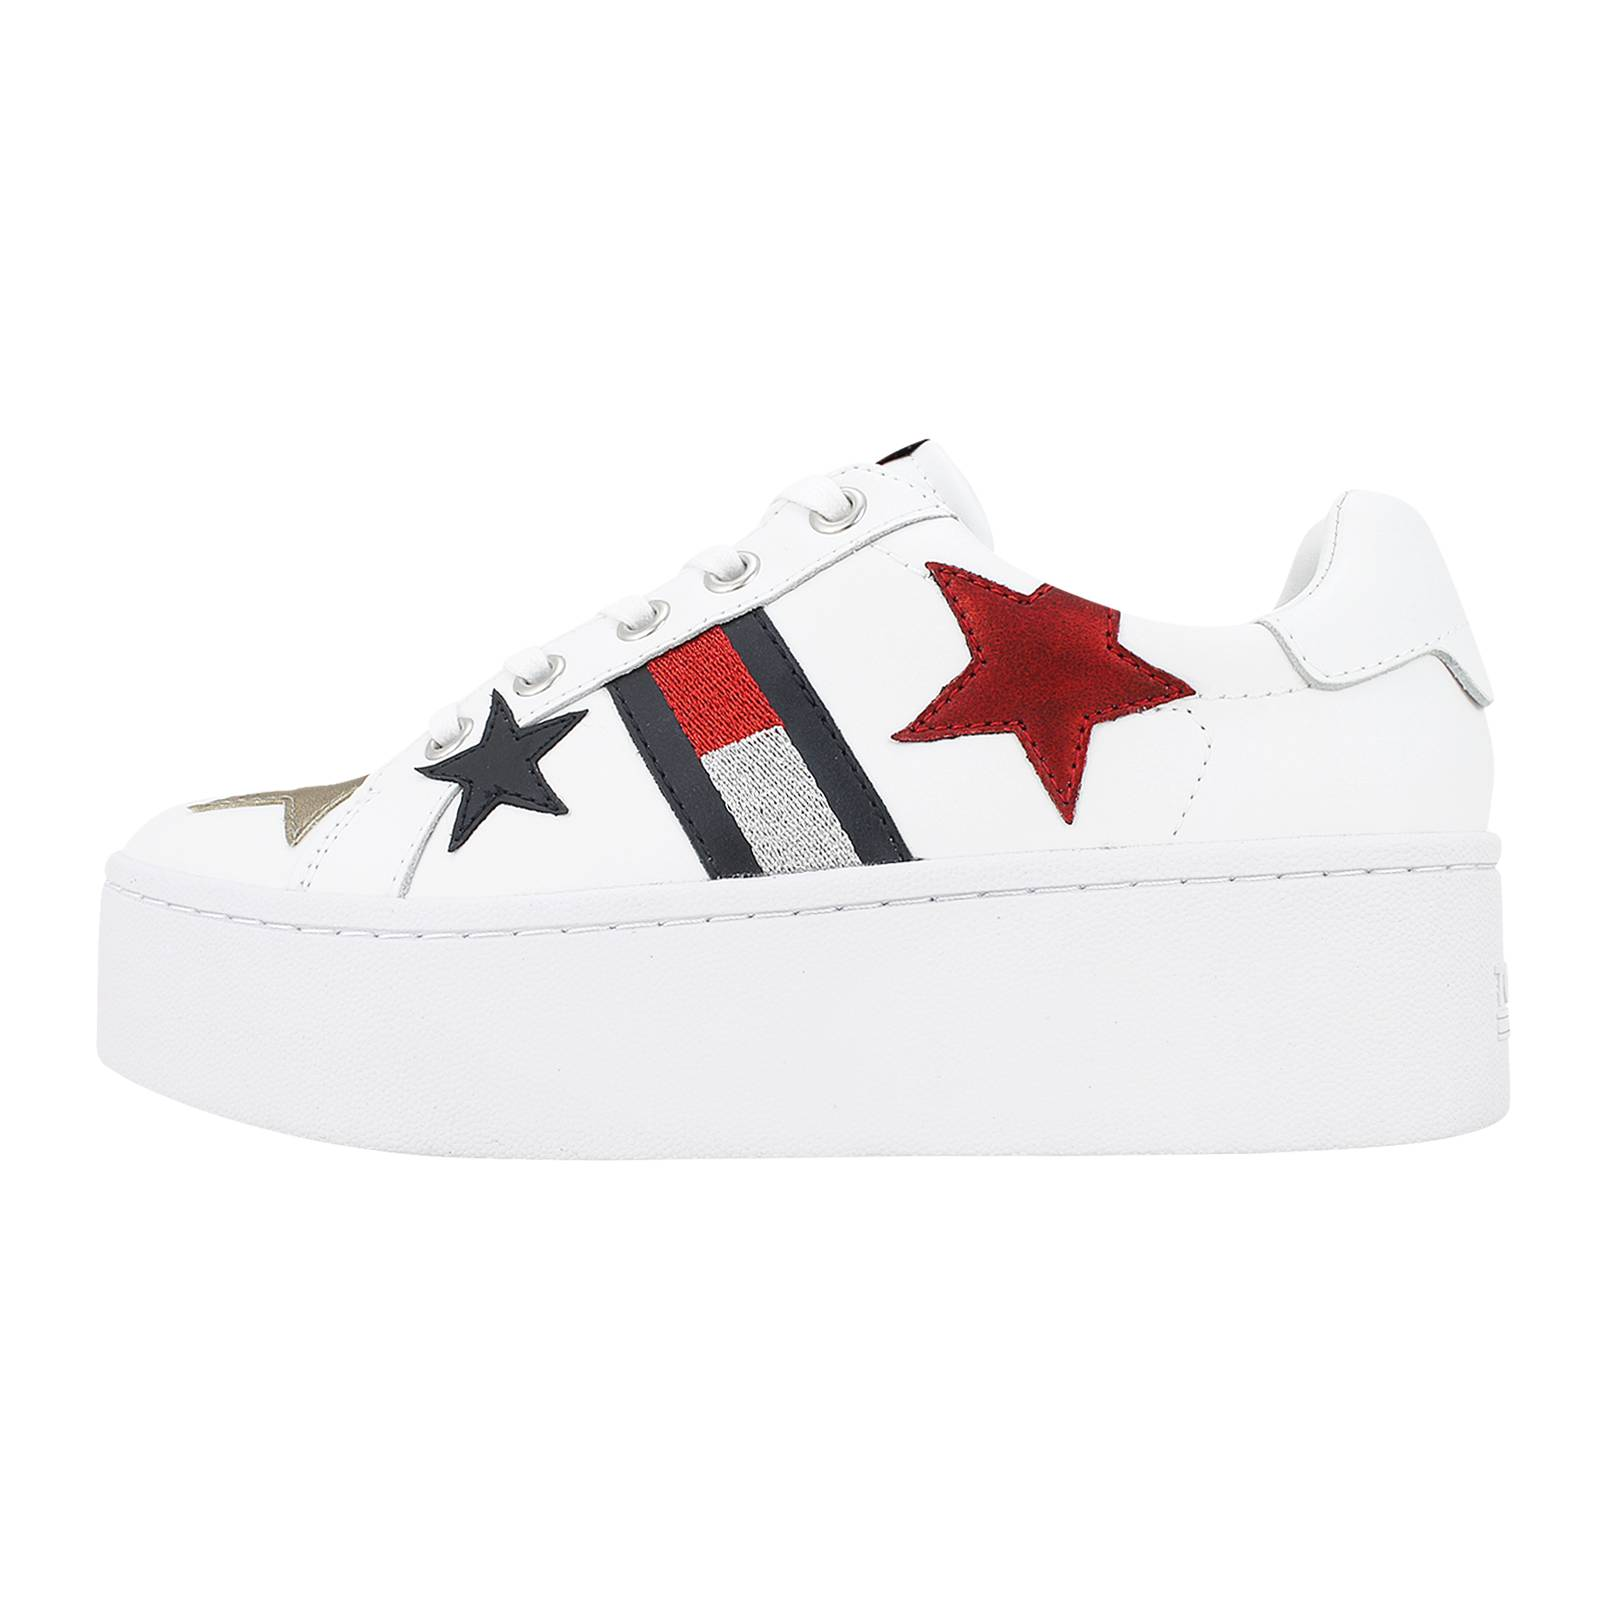 78c3058f67c14 Jeans Icon Sparkle Sneaker - Tommy Hilfiger Women s casual shoes ...